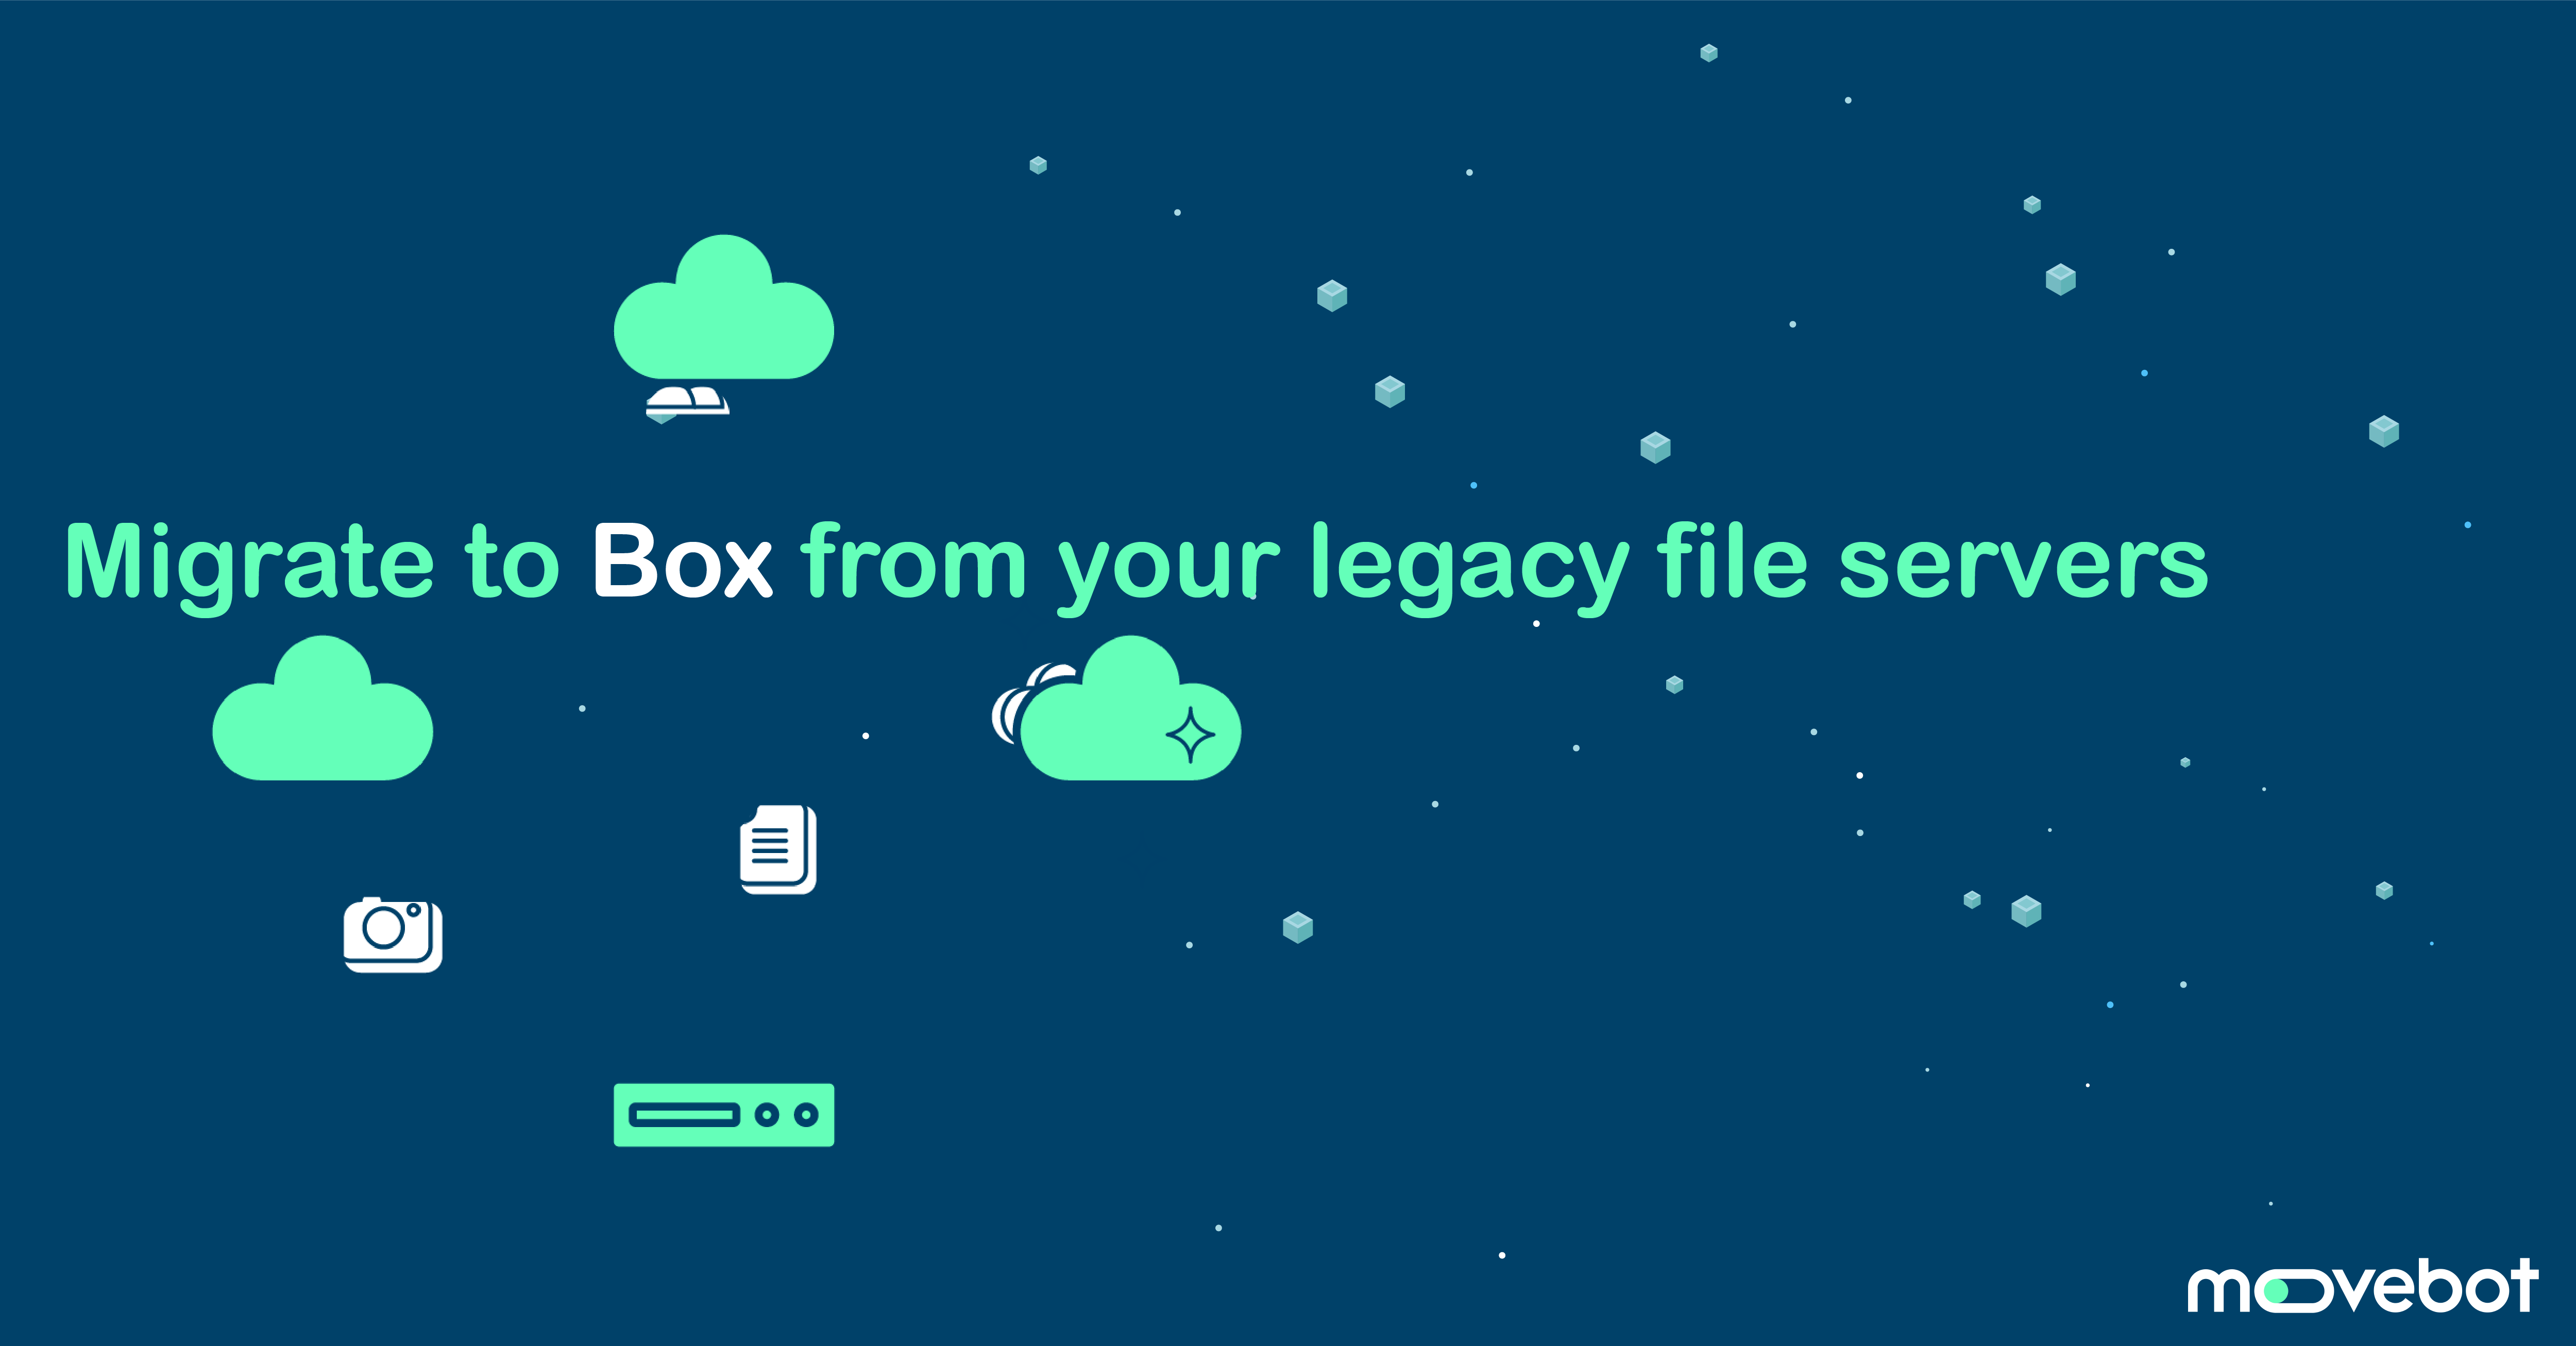 Migrate from file server to Box